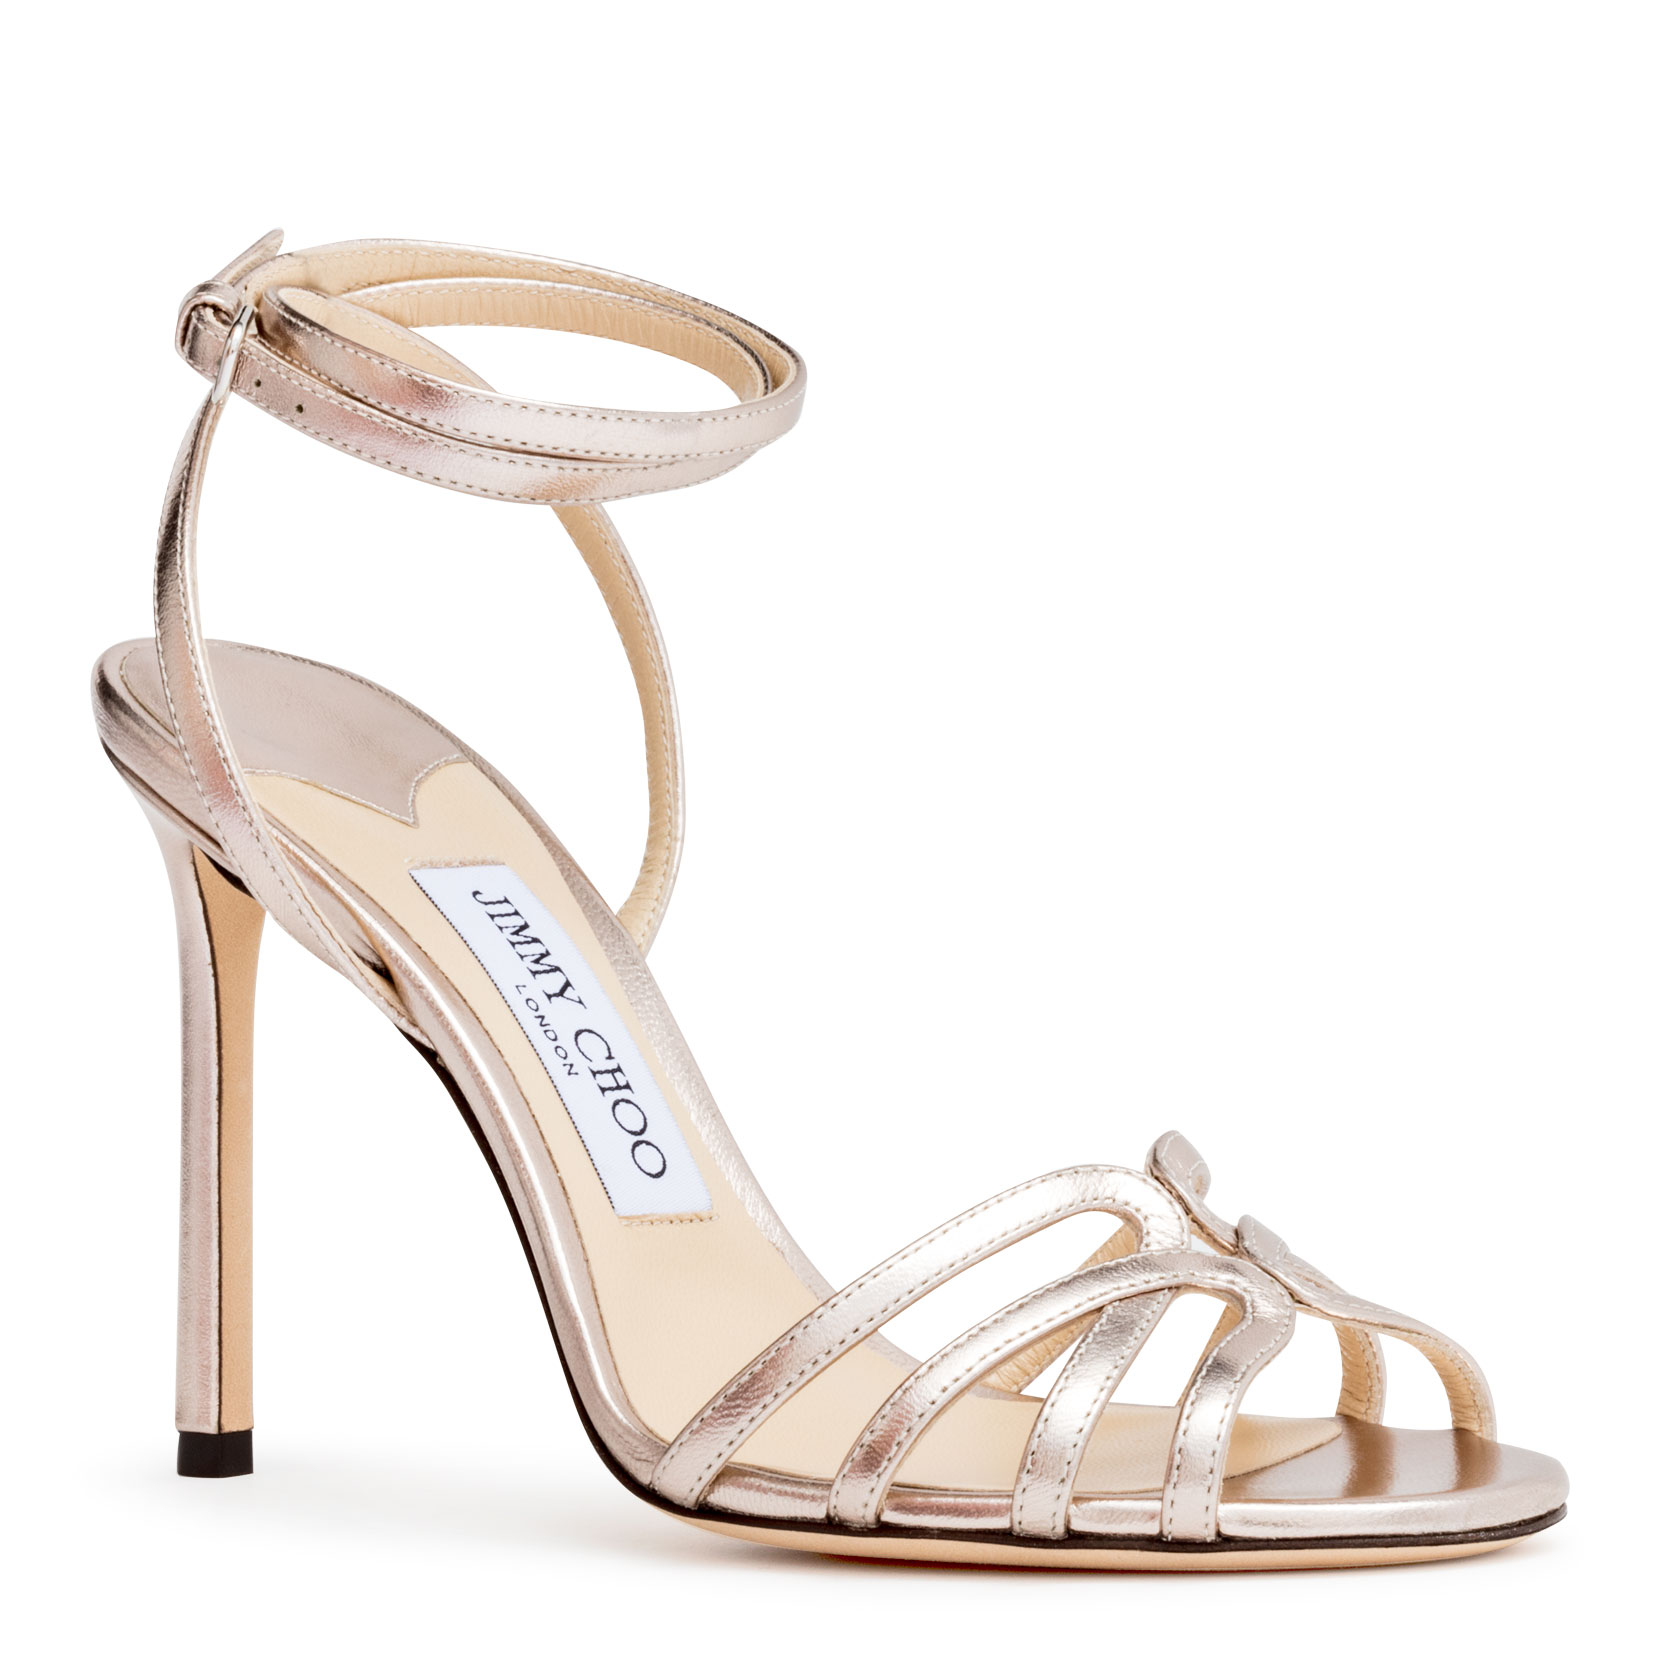 1f9f2fef5 Jimmy Choo Mimi 100 Platinum Metallic Nappa Leather Wrap Around Sandals